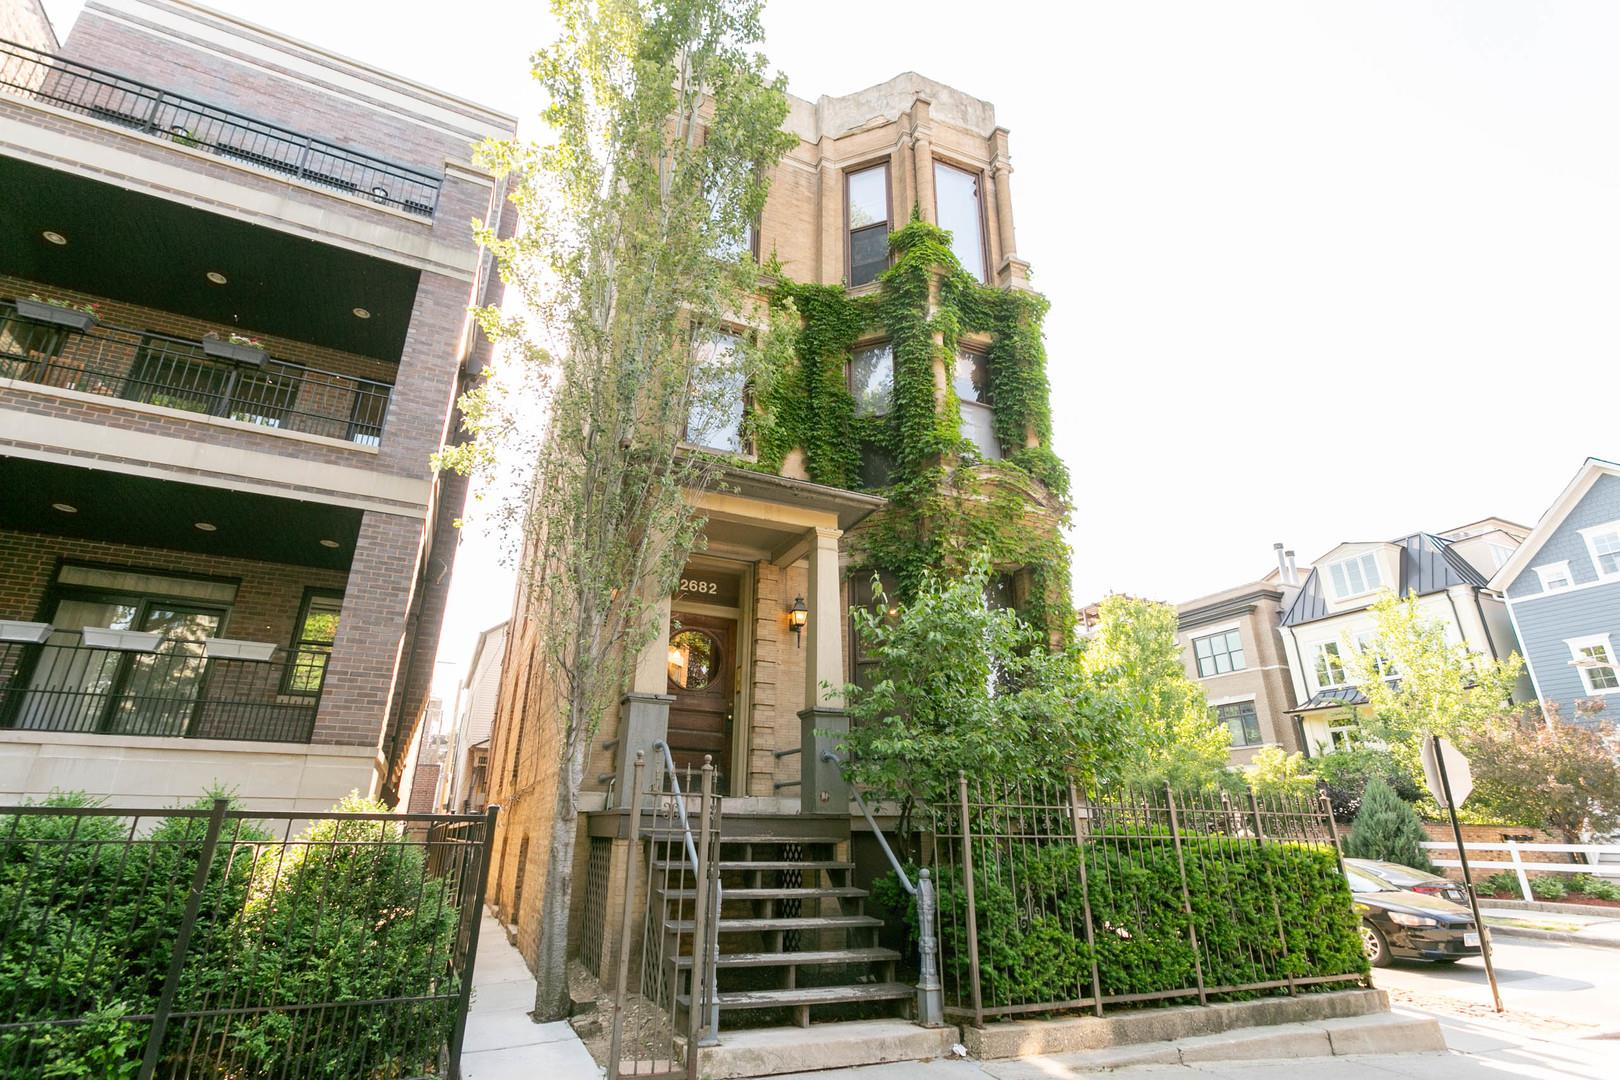 2682 N orchard Street #1F, Chicago, IL 60614 - #: 10771376